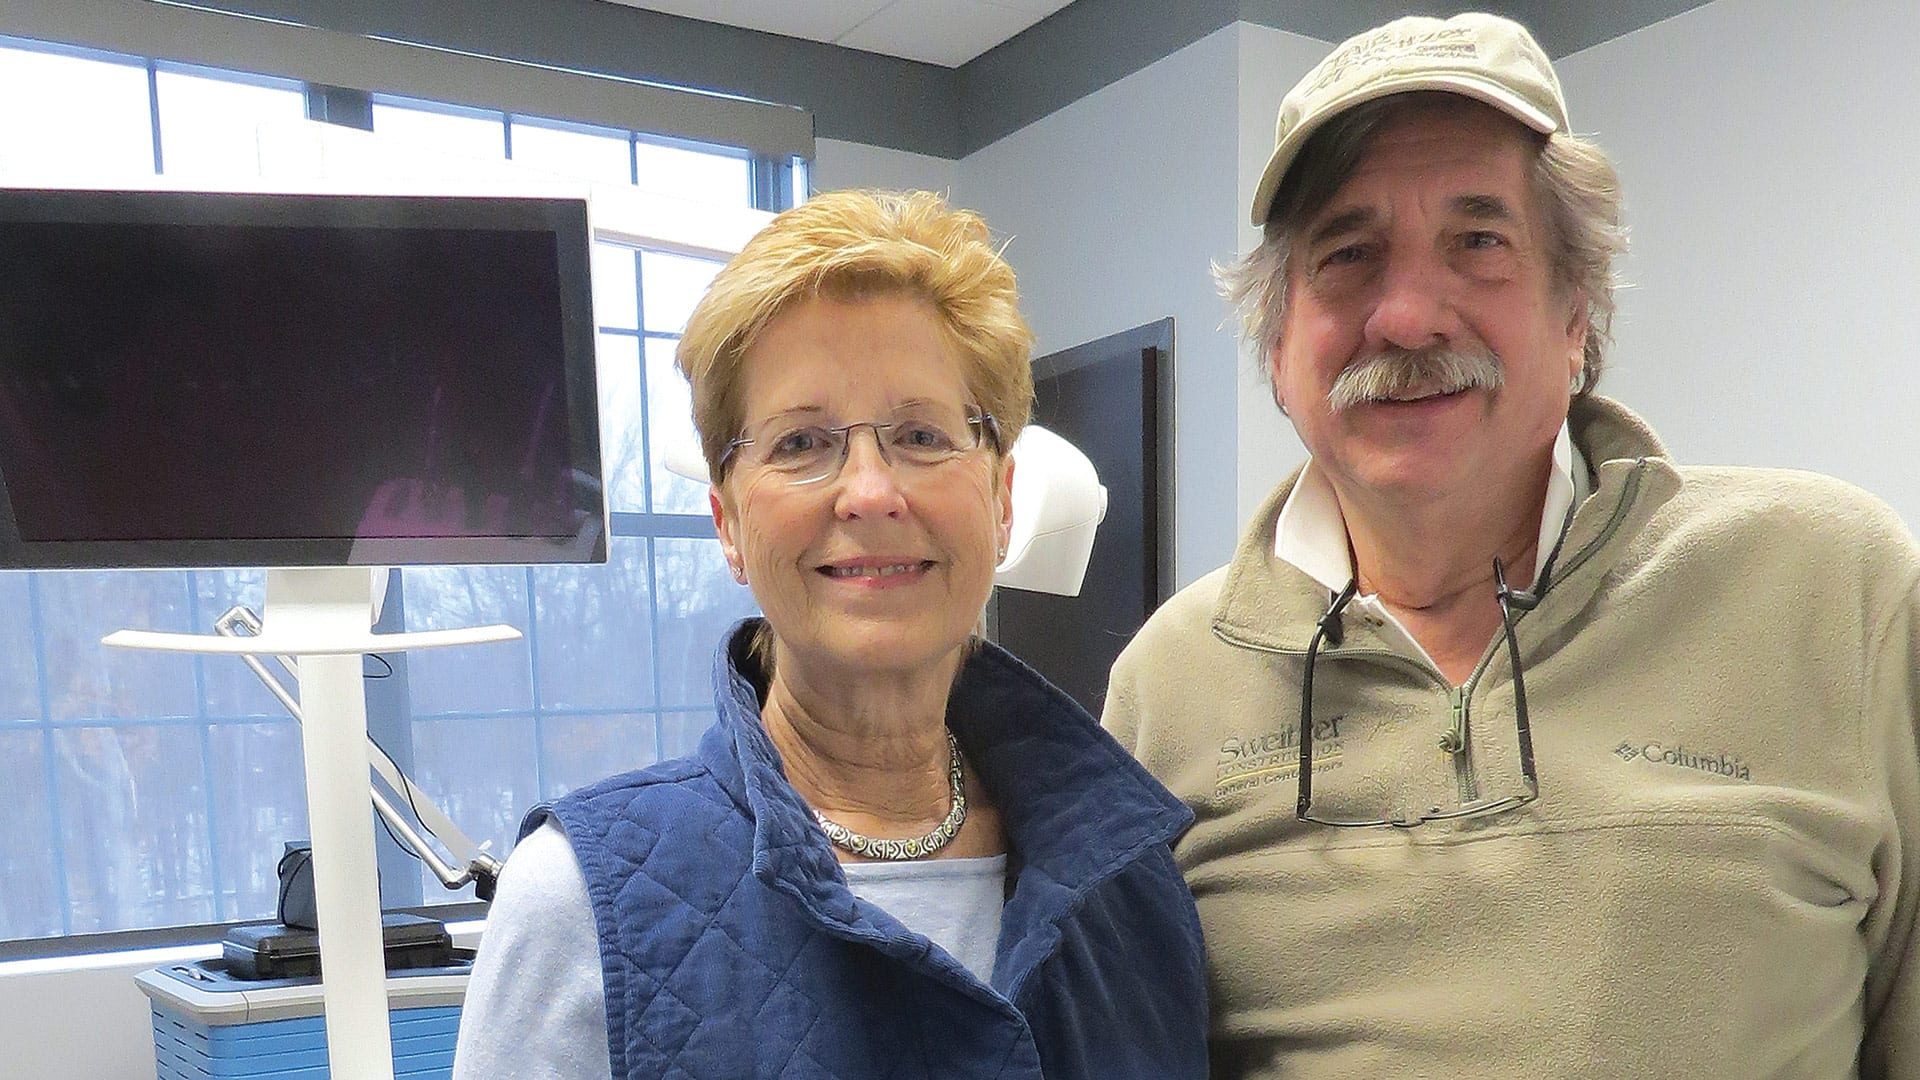 Pat and Craig Sweitzer